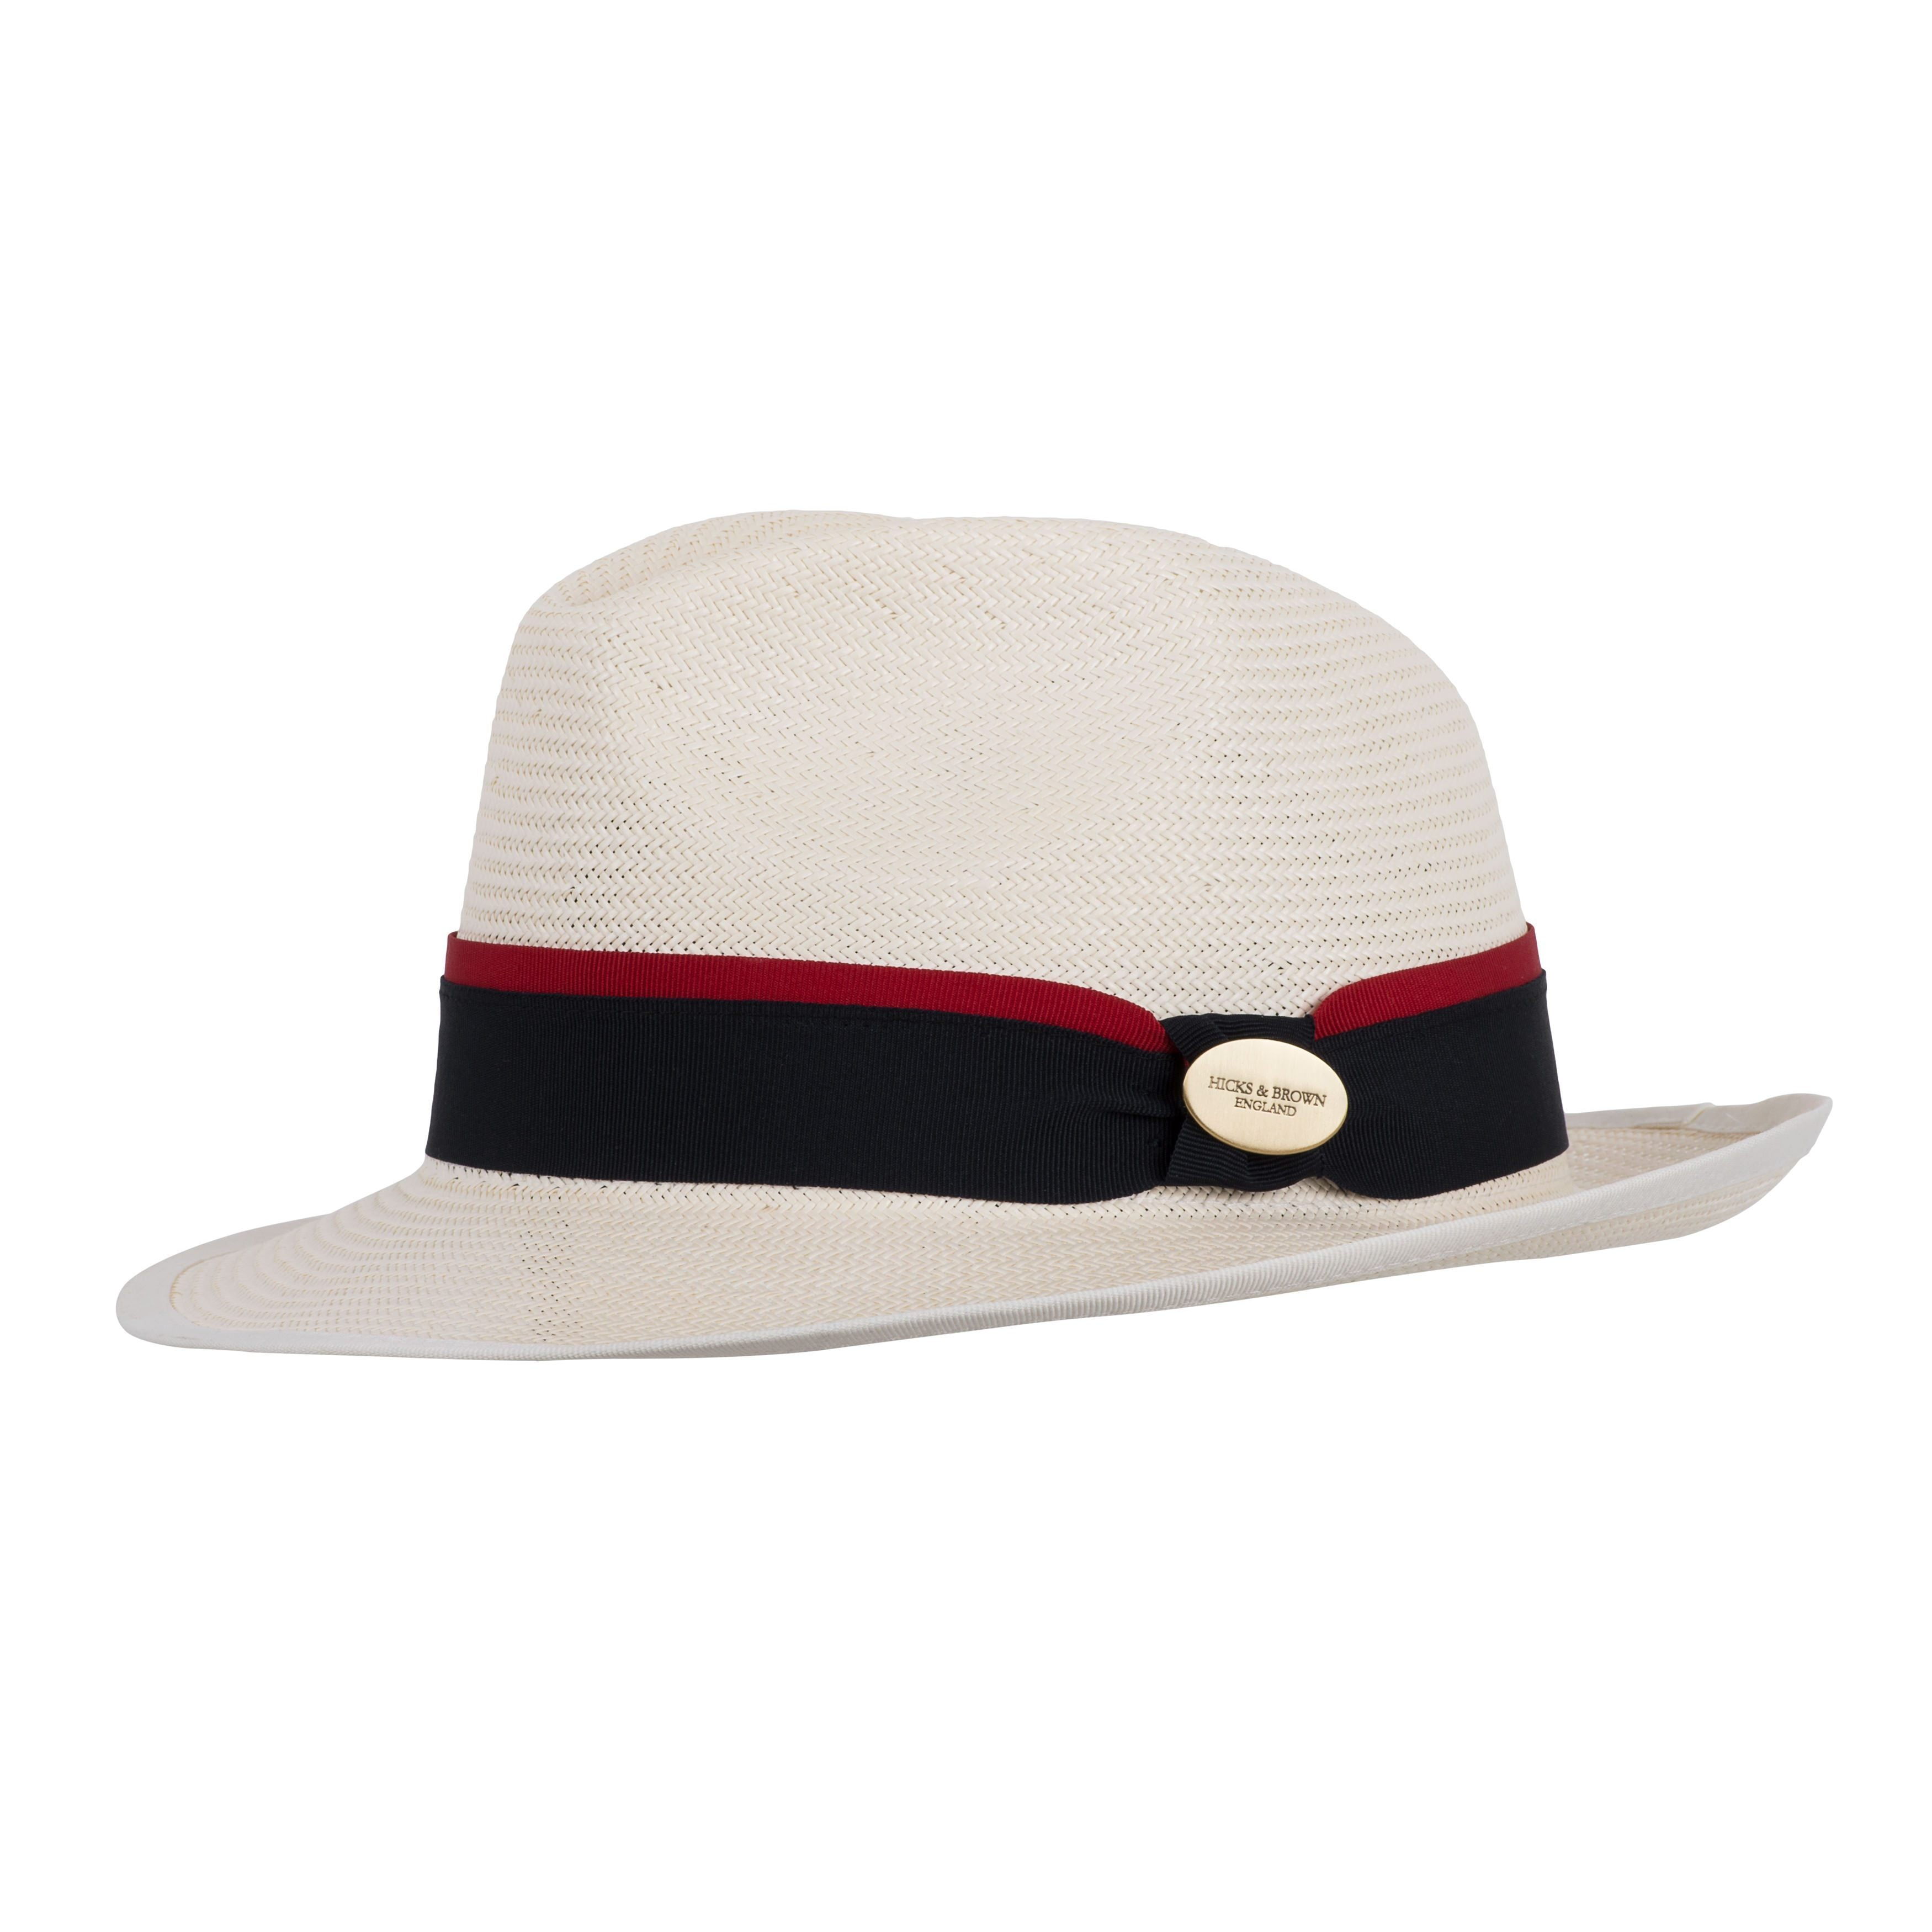 Hicks & Brown Fedora The Holkham Panama (Navy with Red ribbon)